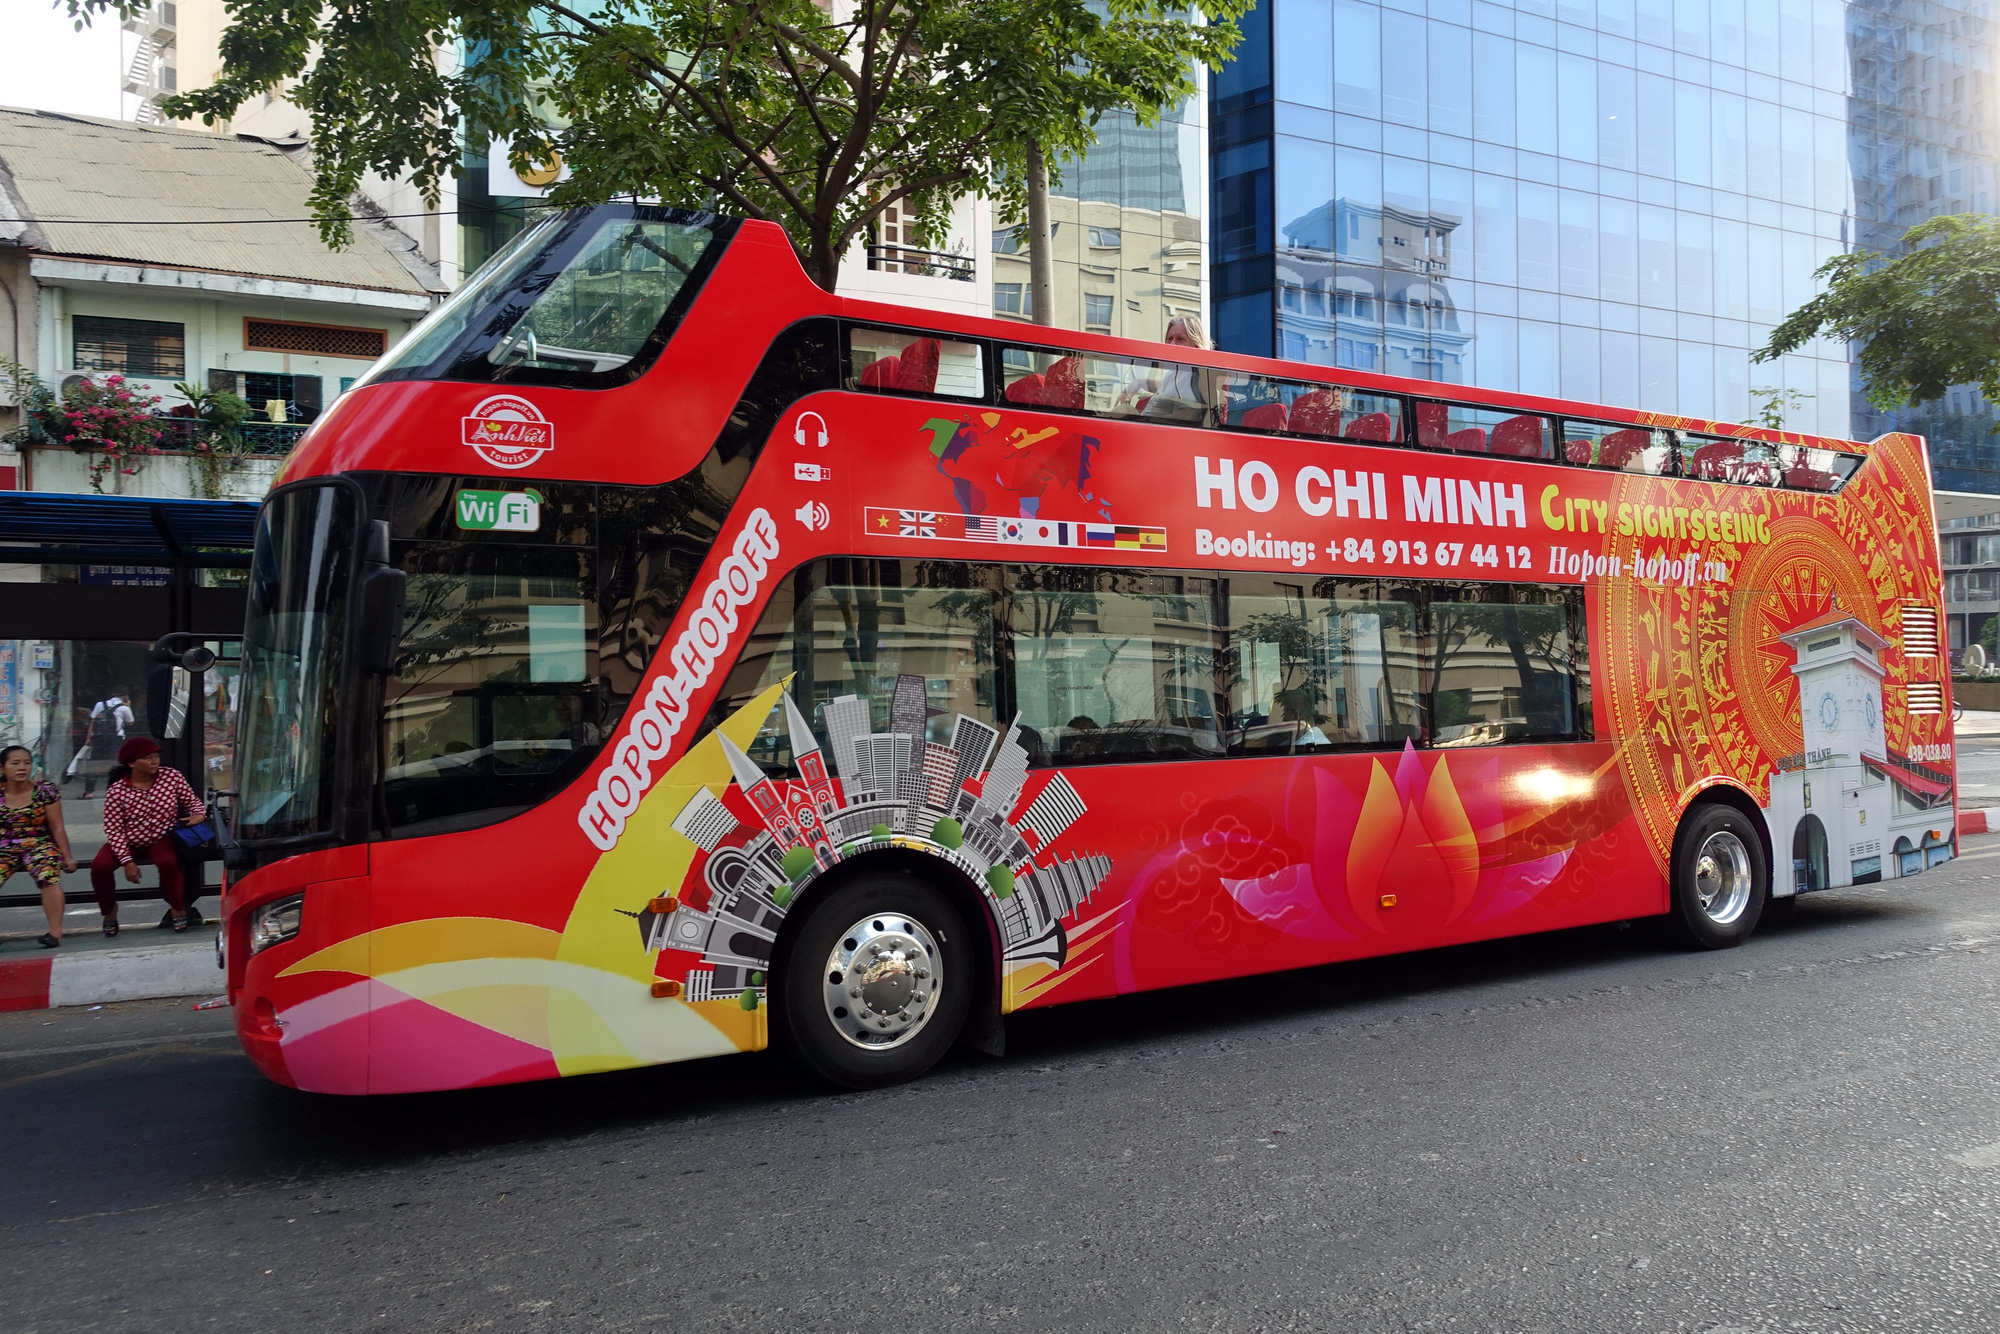 Ho Chi Minh City to launch hop on-hop off bus service next week